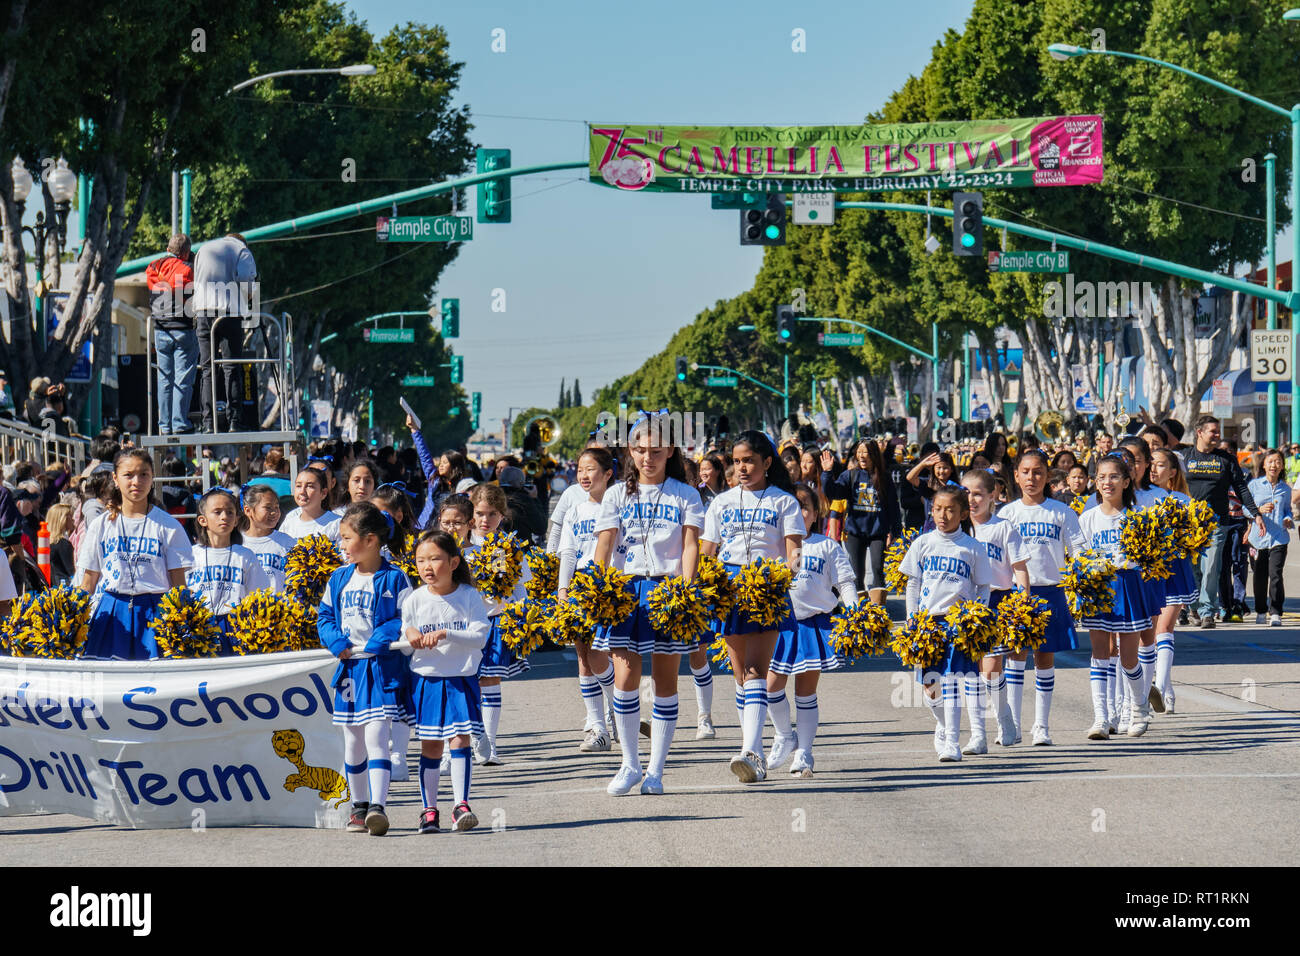 Los Angeles, FEB 23: Londen School Marching band parade in the Camellia Festival on FEB 23, 2019 at Los Angeles, California - Stock Image